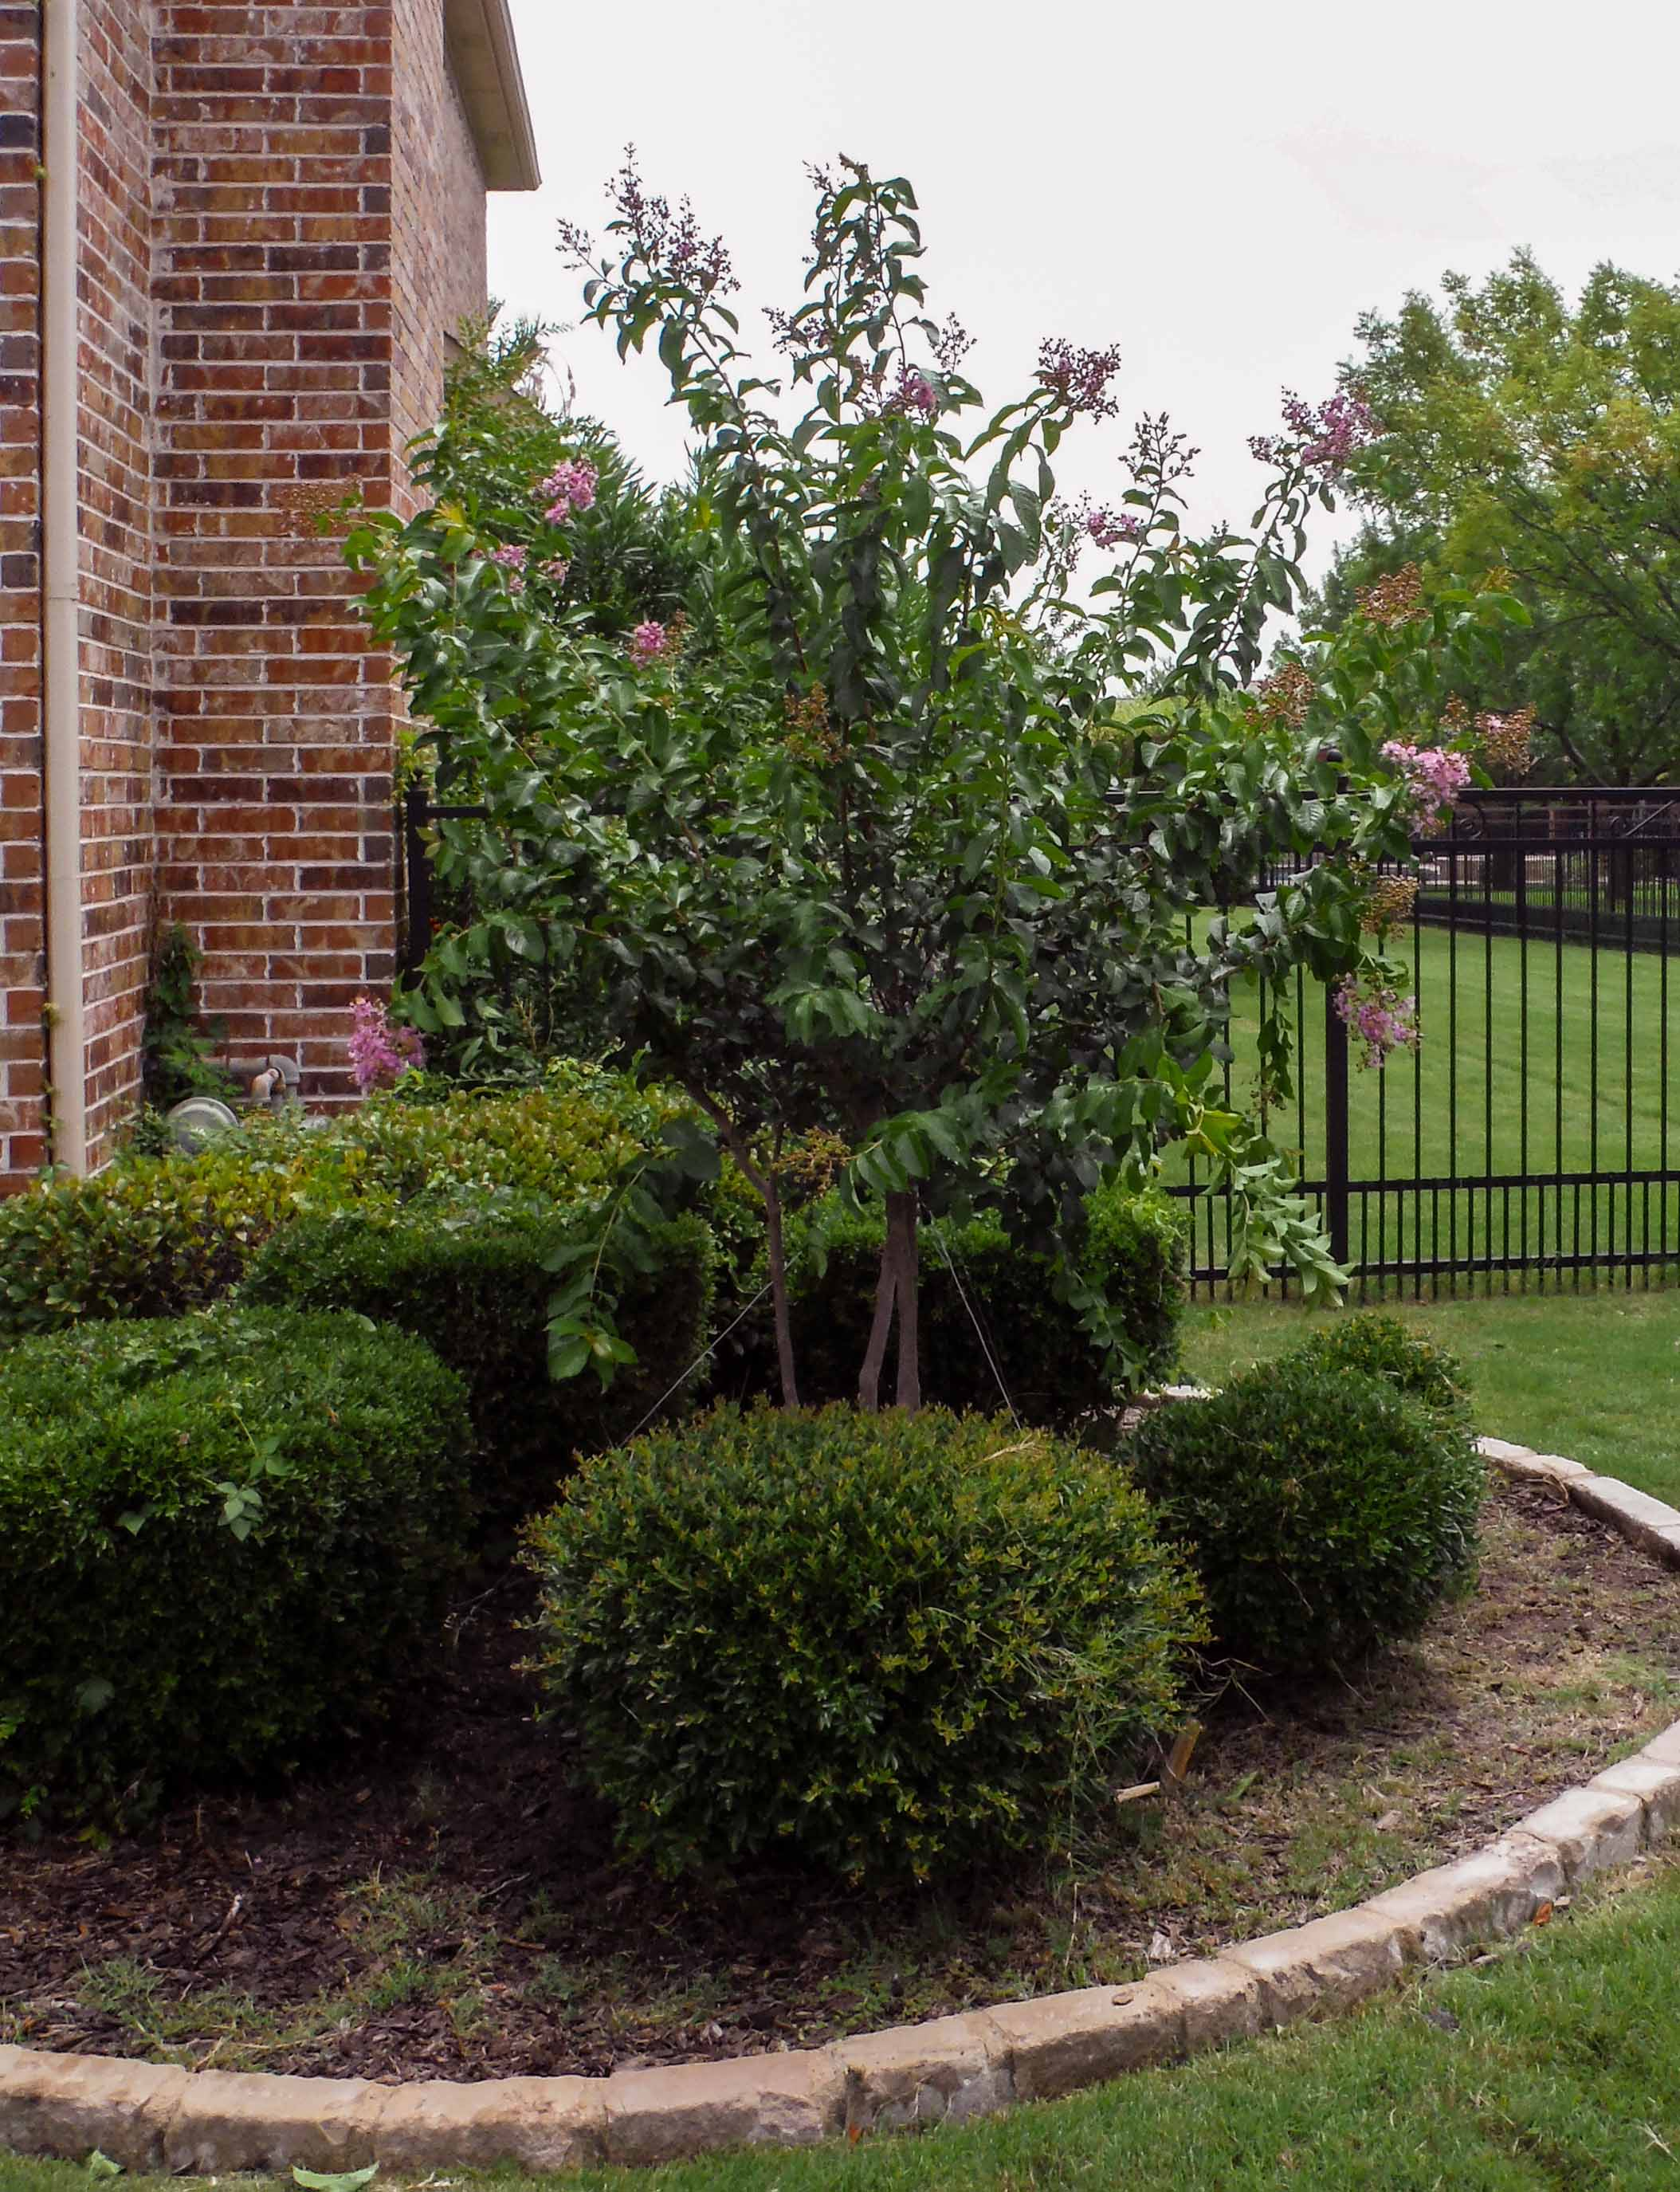 Muskogee Crape Myrtle installed in a frontyard flower bed by Treeland Nursery.